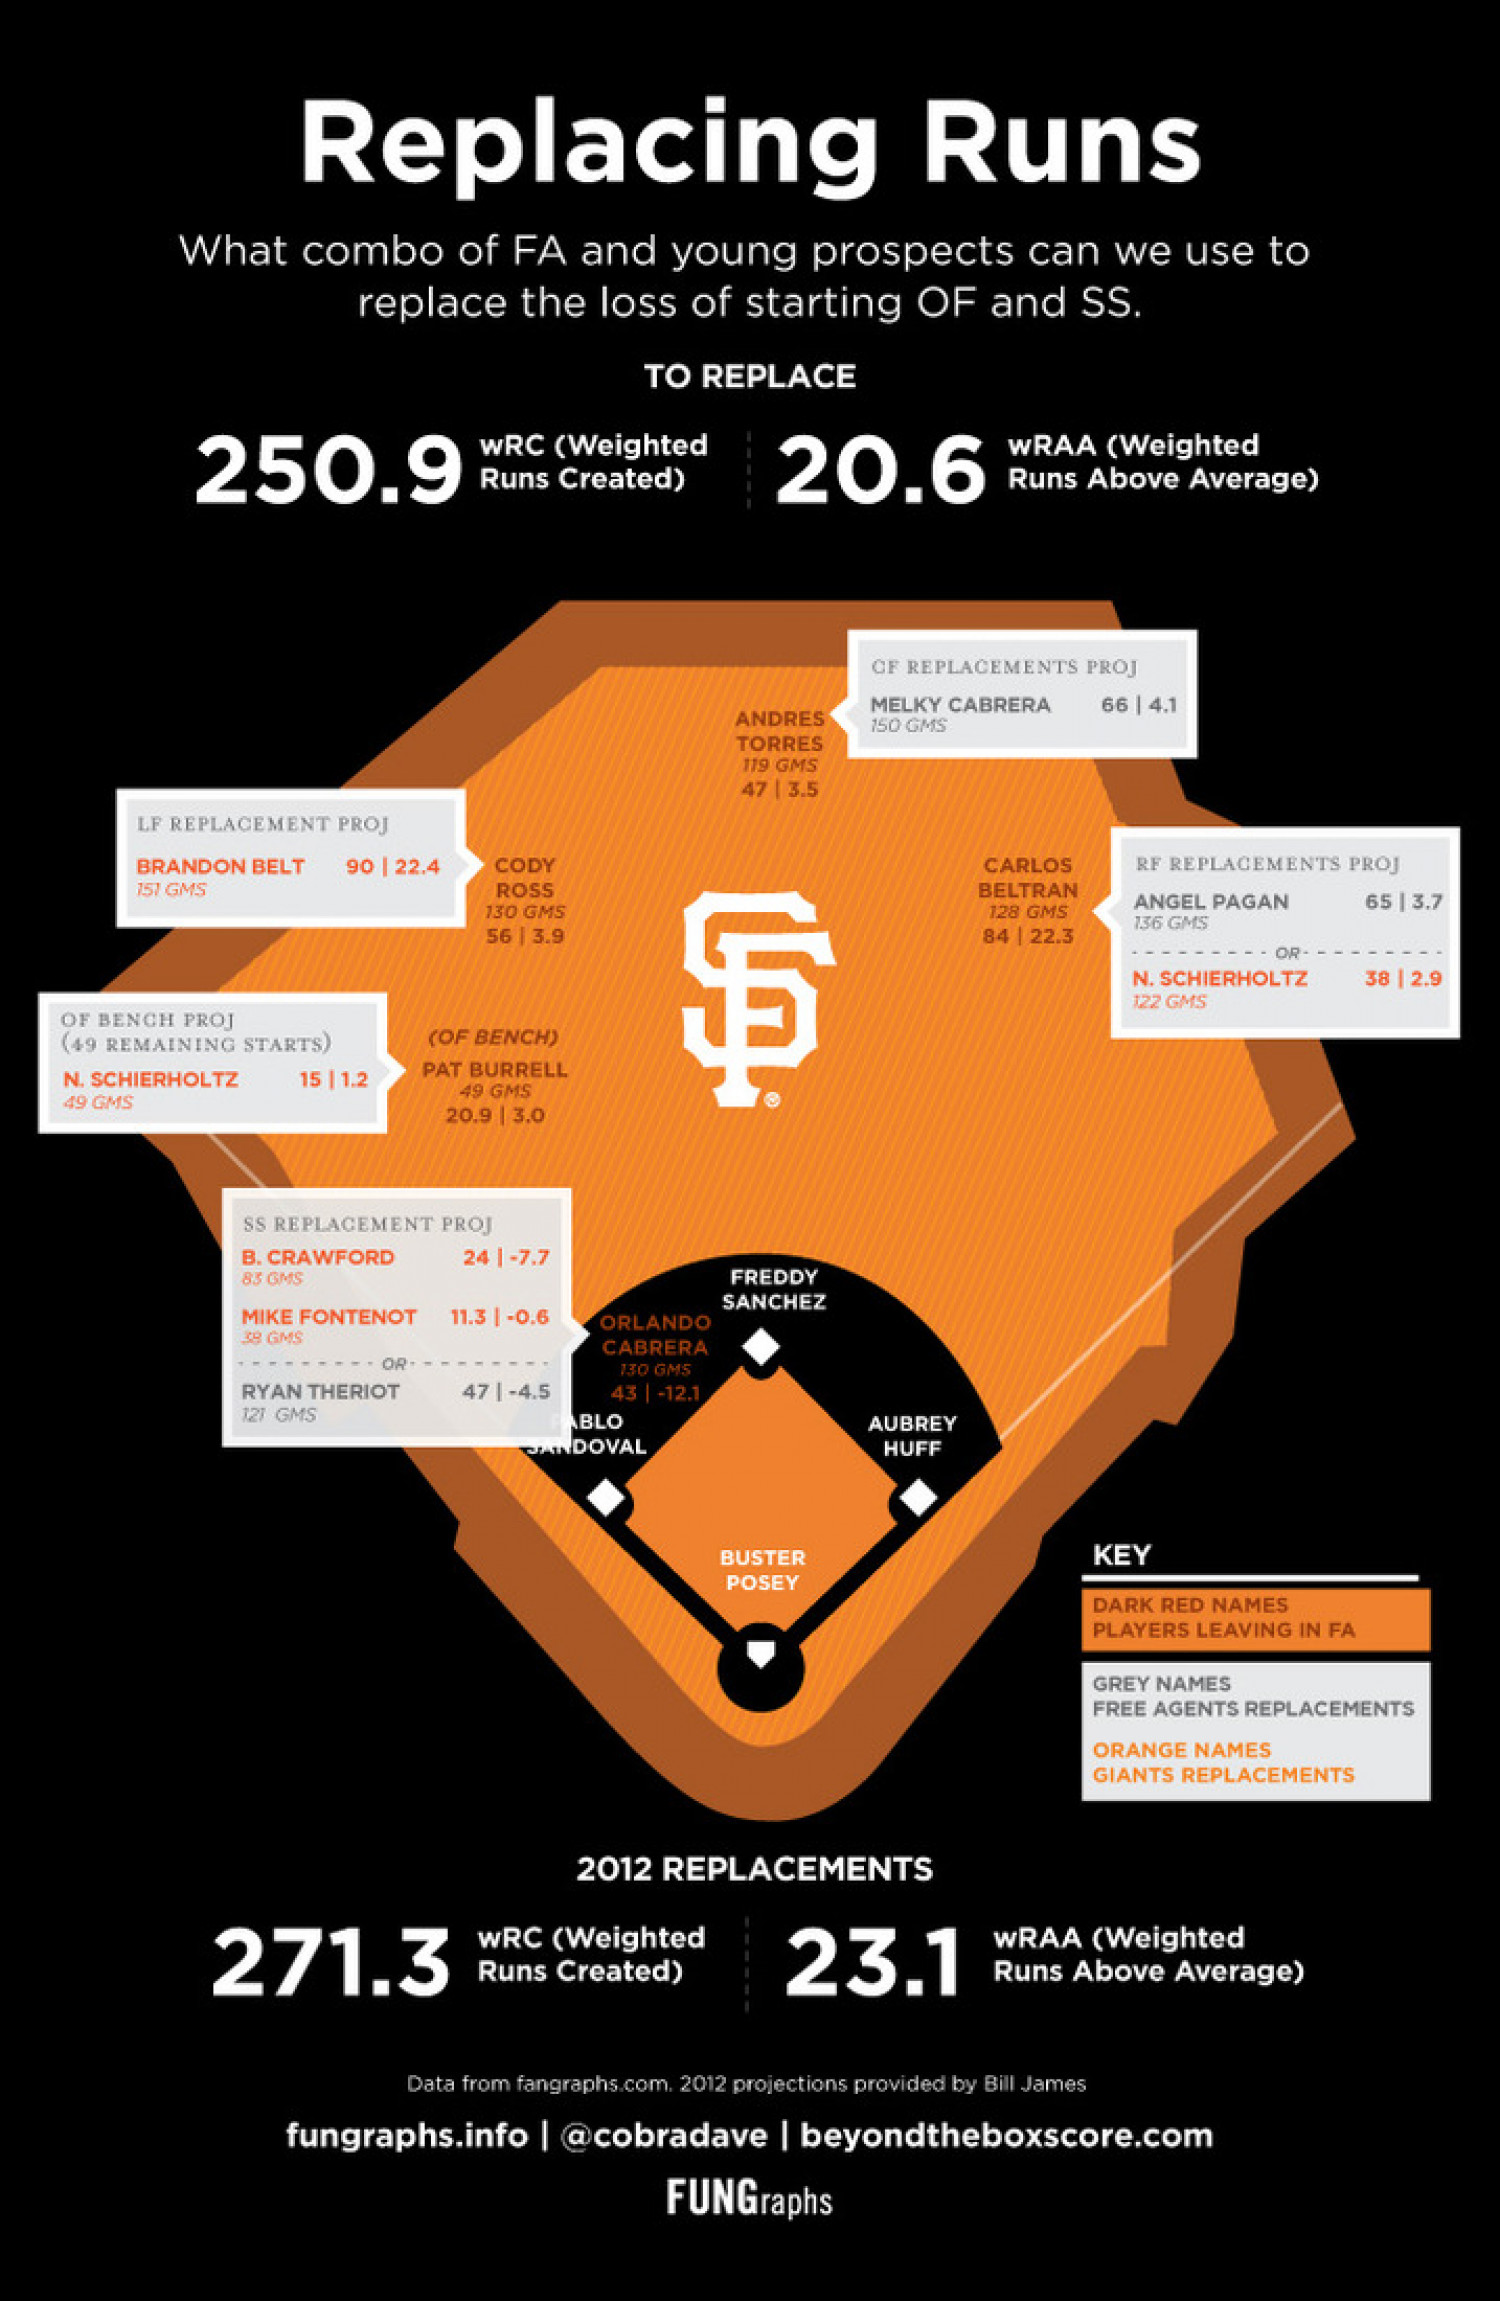 Replacing Runs: Giants Infographic